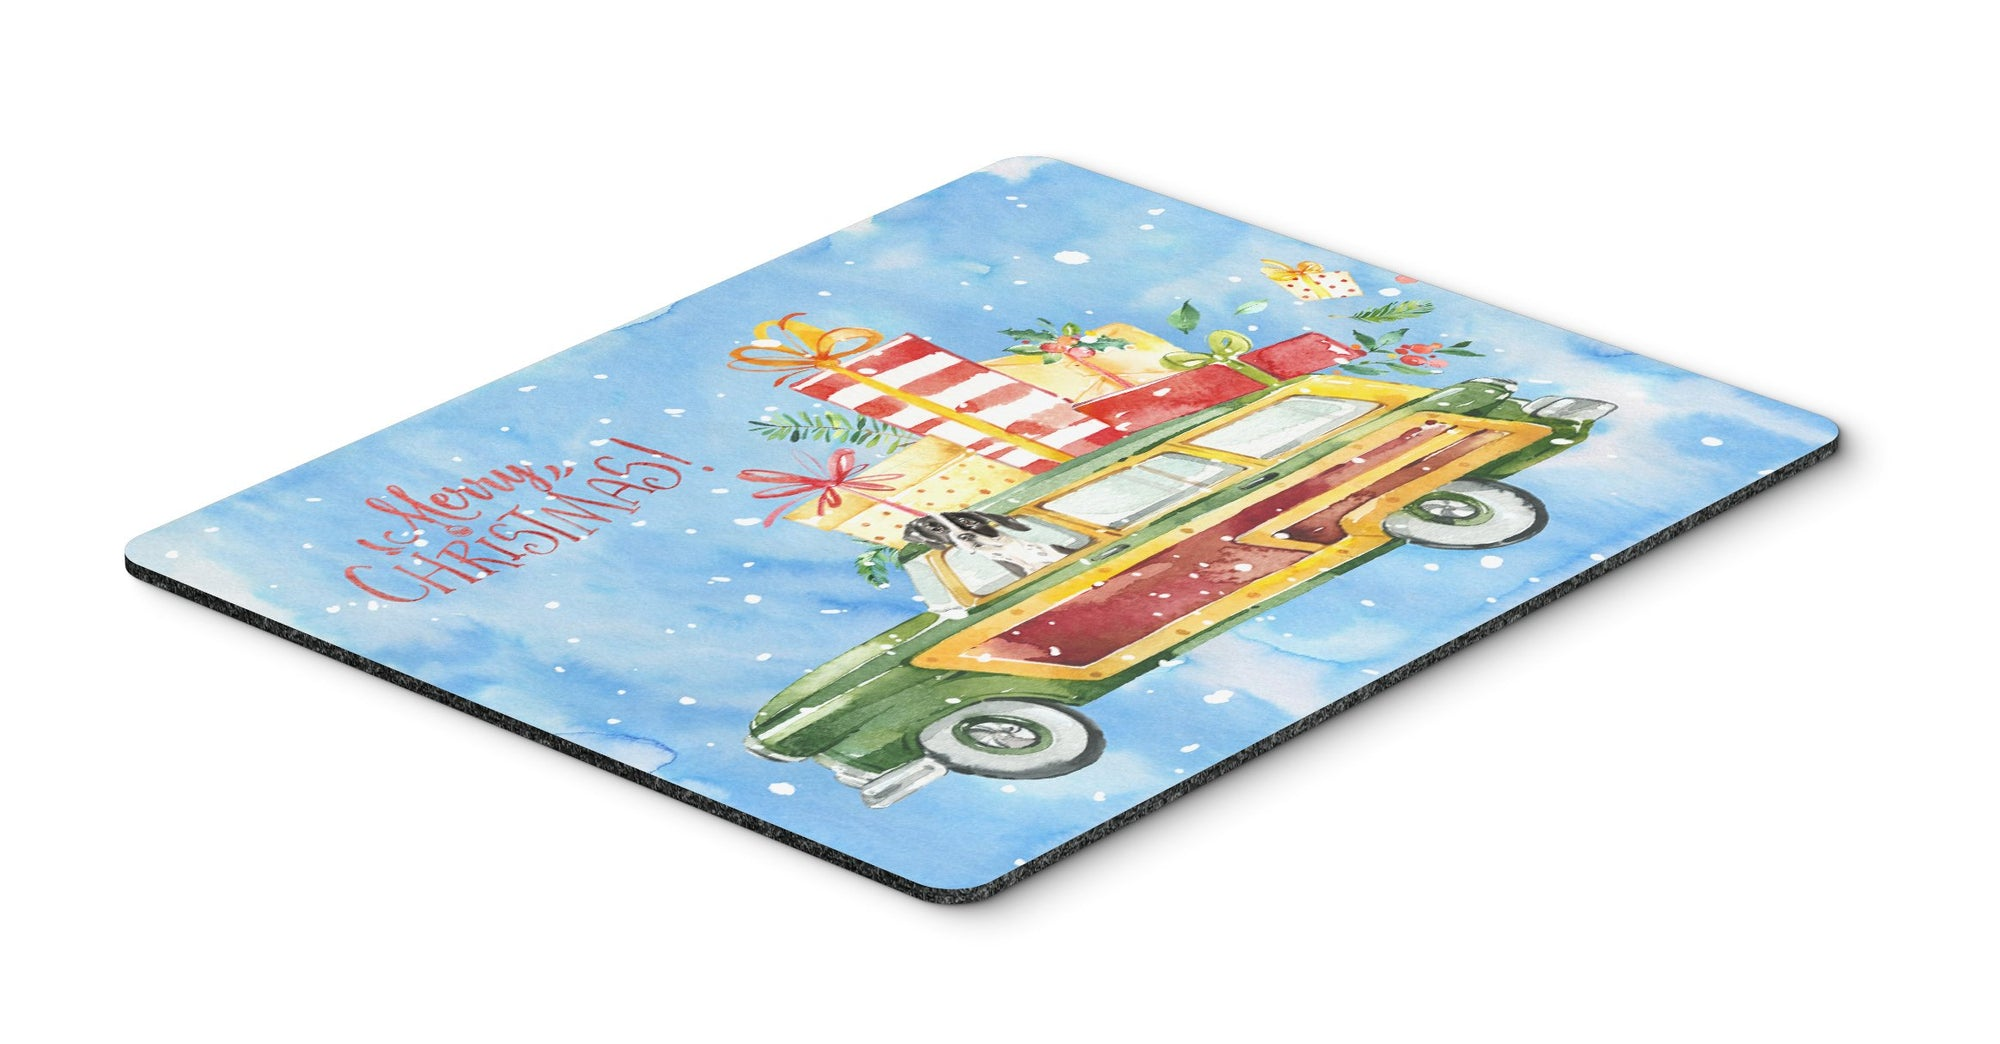 Merry Christmas English Pointer Mouse Pad, Hot Pad or Trivet CK2405MP by Caroline's Treasures